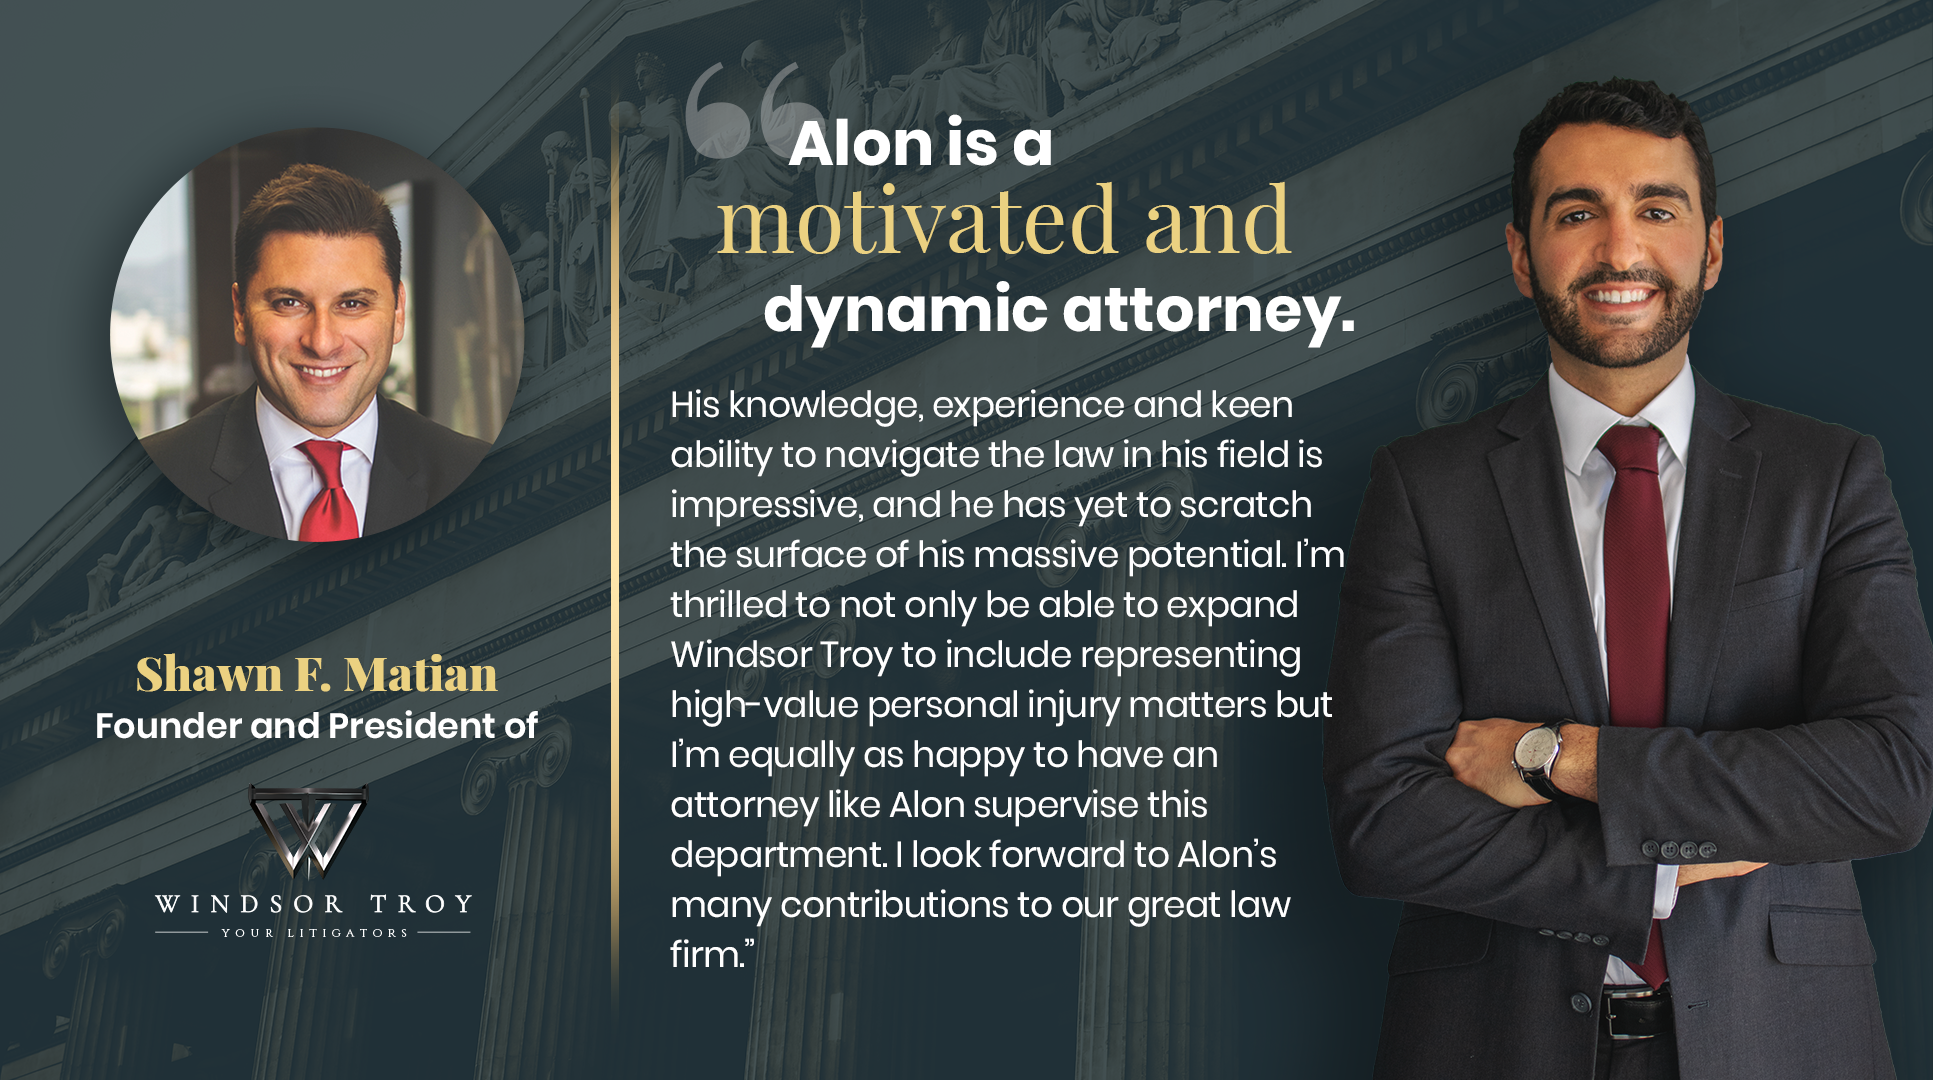 Windsor Troy is proud to announce the appointment of Attorney Alon Aliav